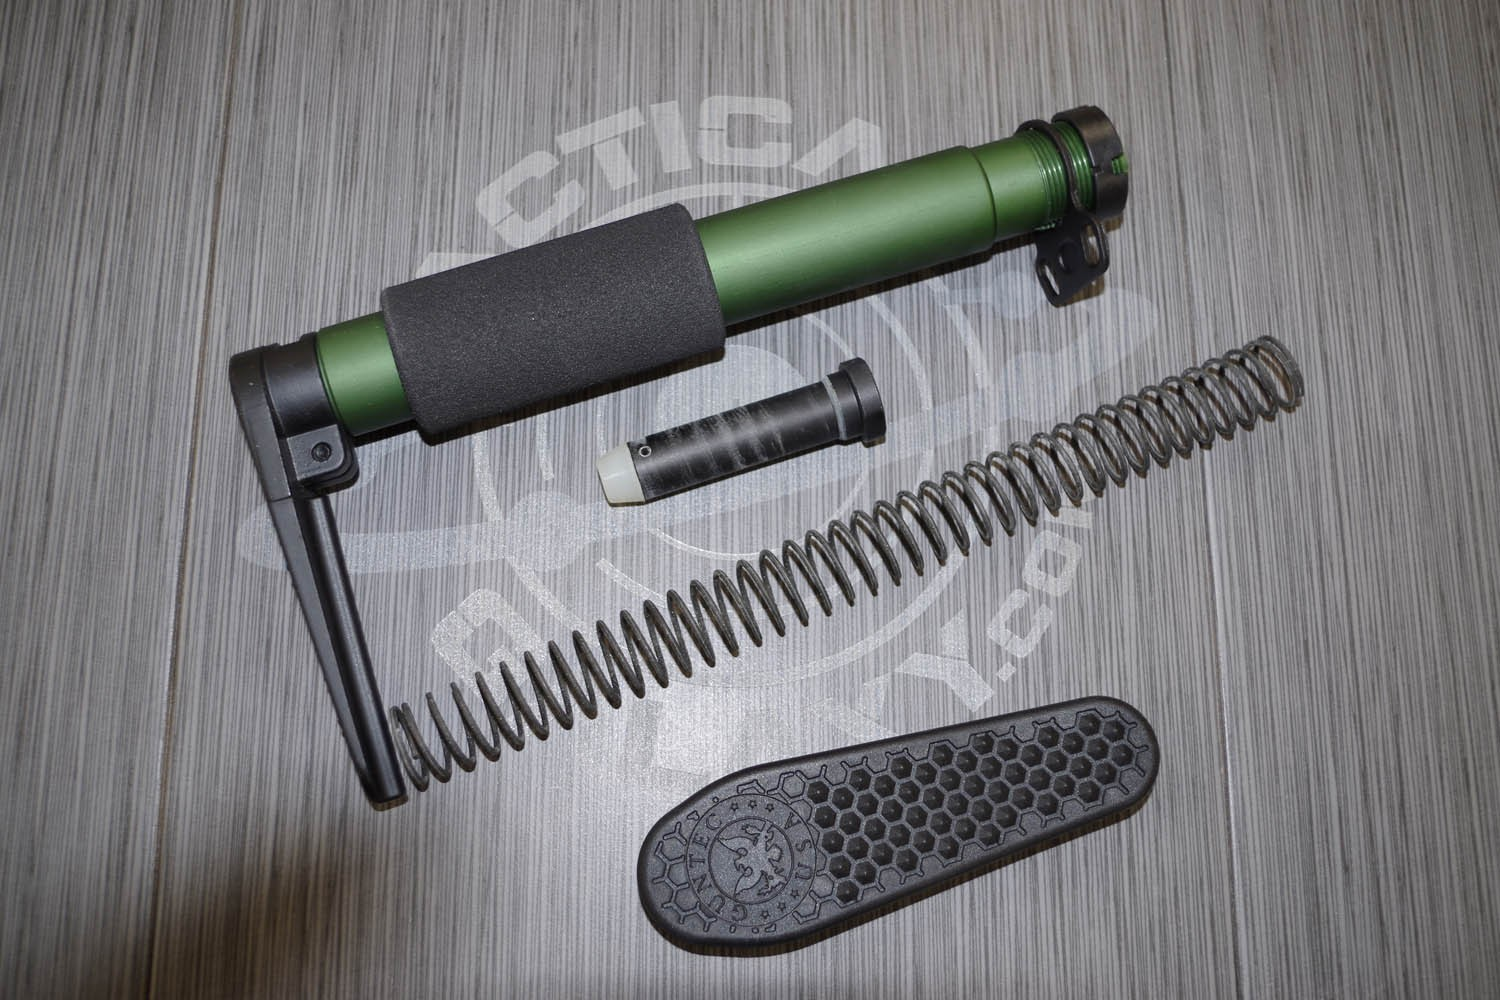 Ar15 Anodized Green Aen Pistol Grip Stock W Recoil Pad